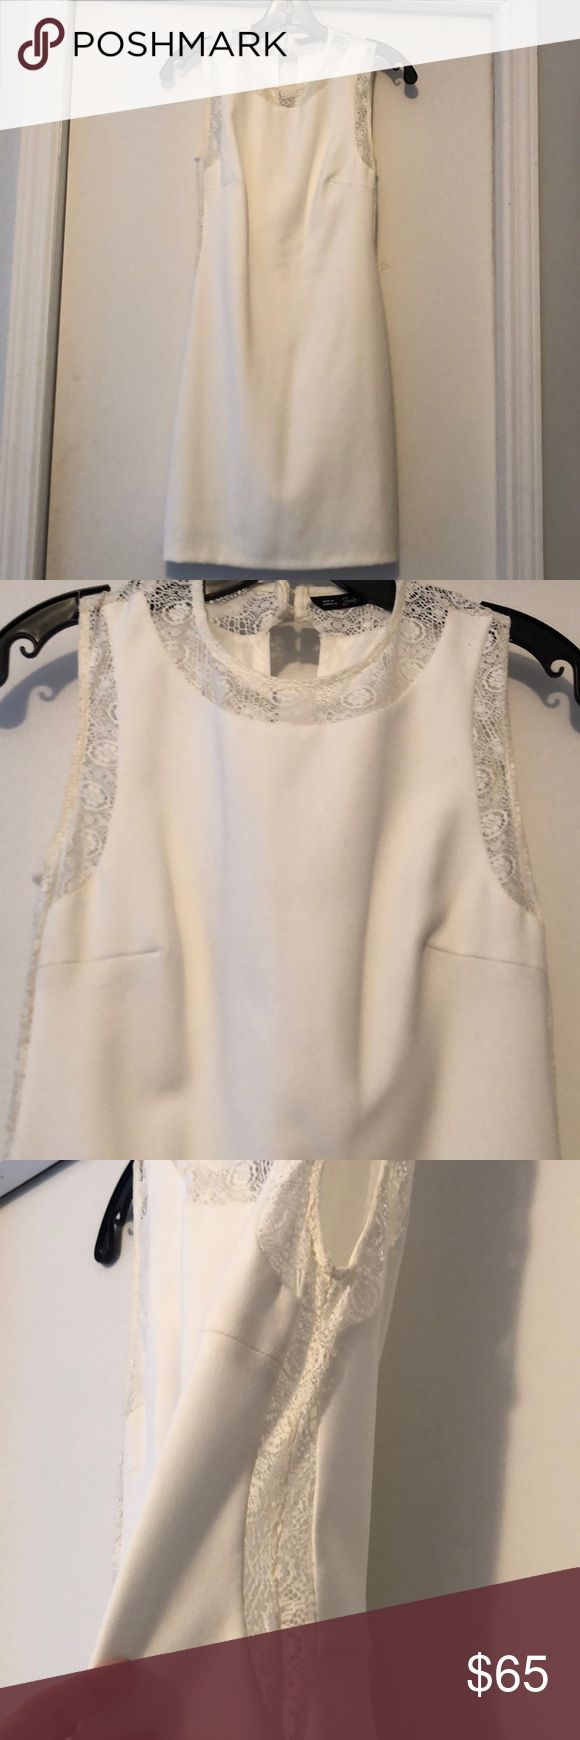 "Zara off white gorgeous dress with lace details! Size M (but definitely fits more like a small to XS), my normal size is 0-2. Lace cutouts on side show bare skin- super cute! Length top of shoulder to bottom 33"". Make an offer! Zara Dresses Mini"